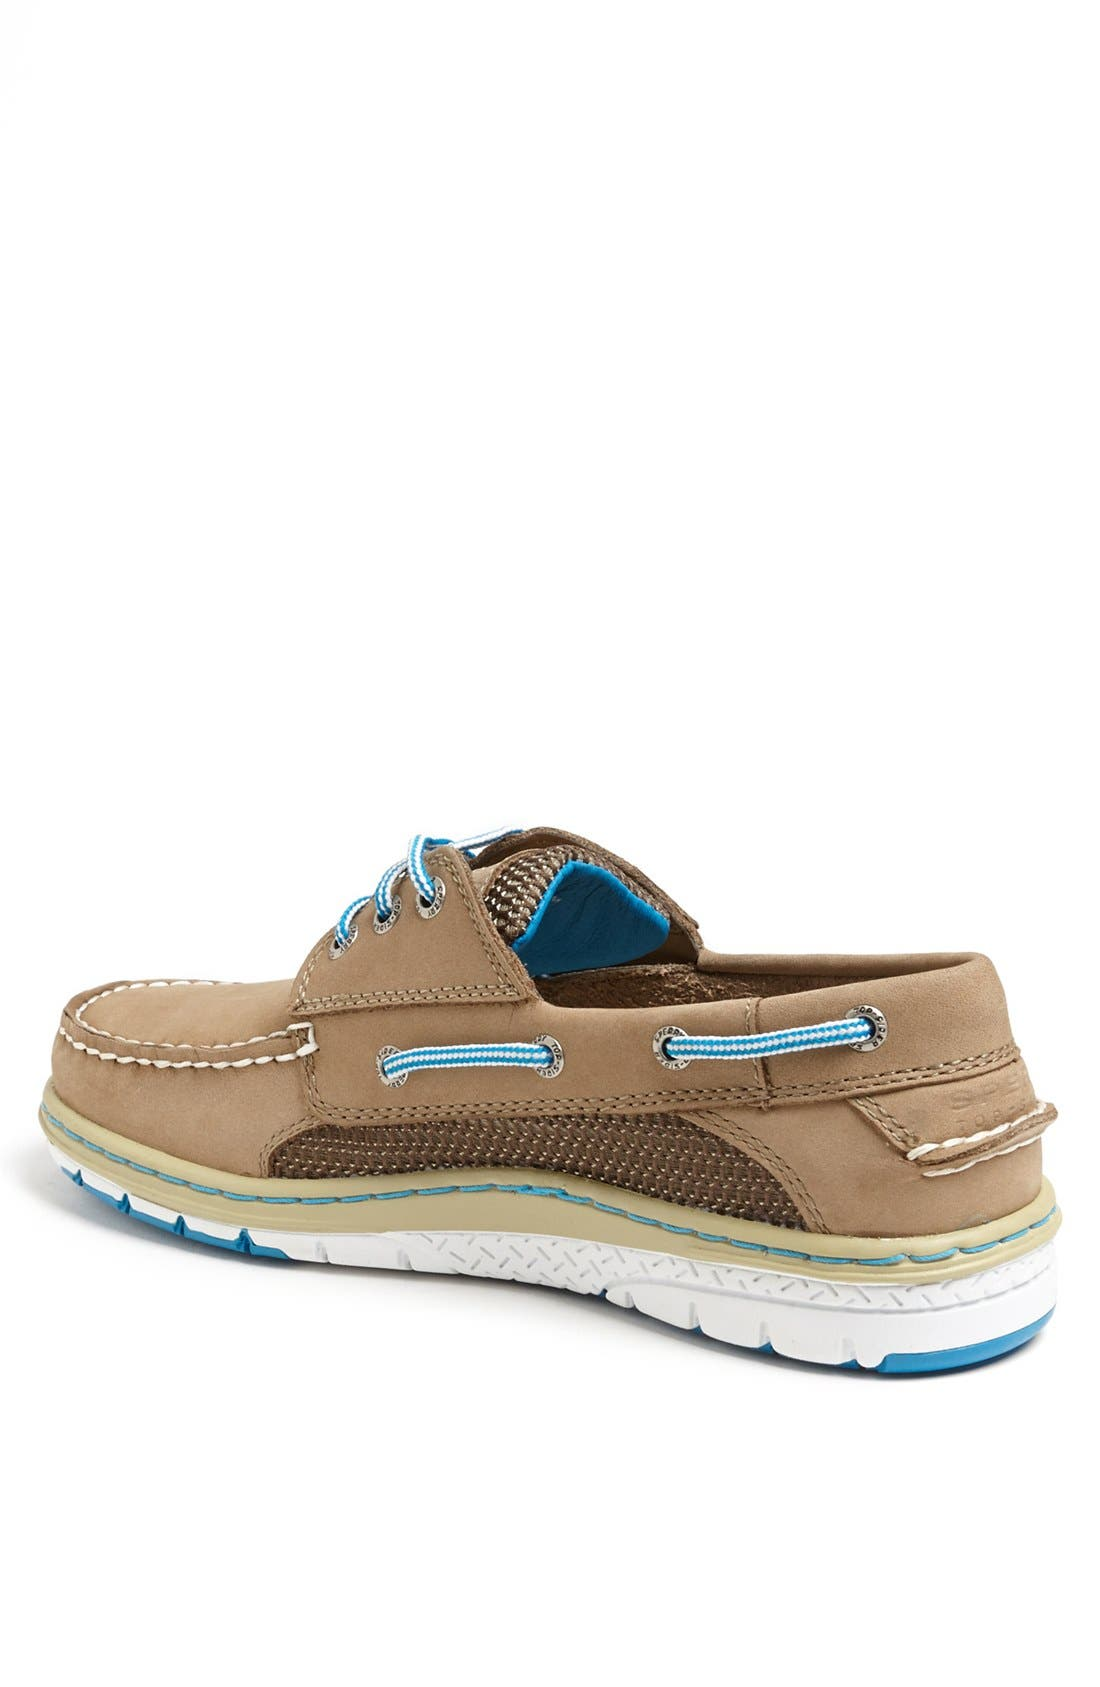 'Billfish Ultralite' Boat Shoe,                             Alternate thumbnail 52, color,